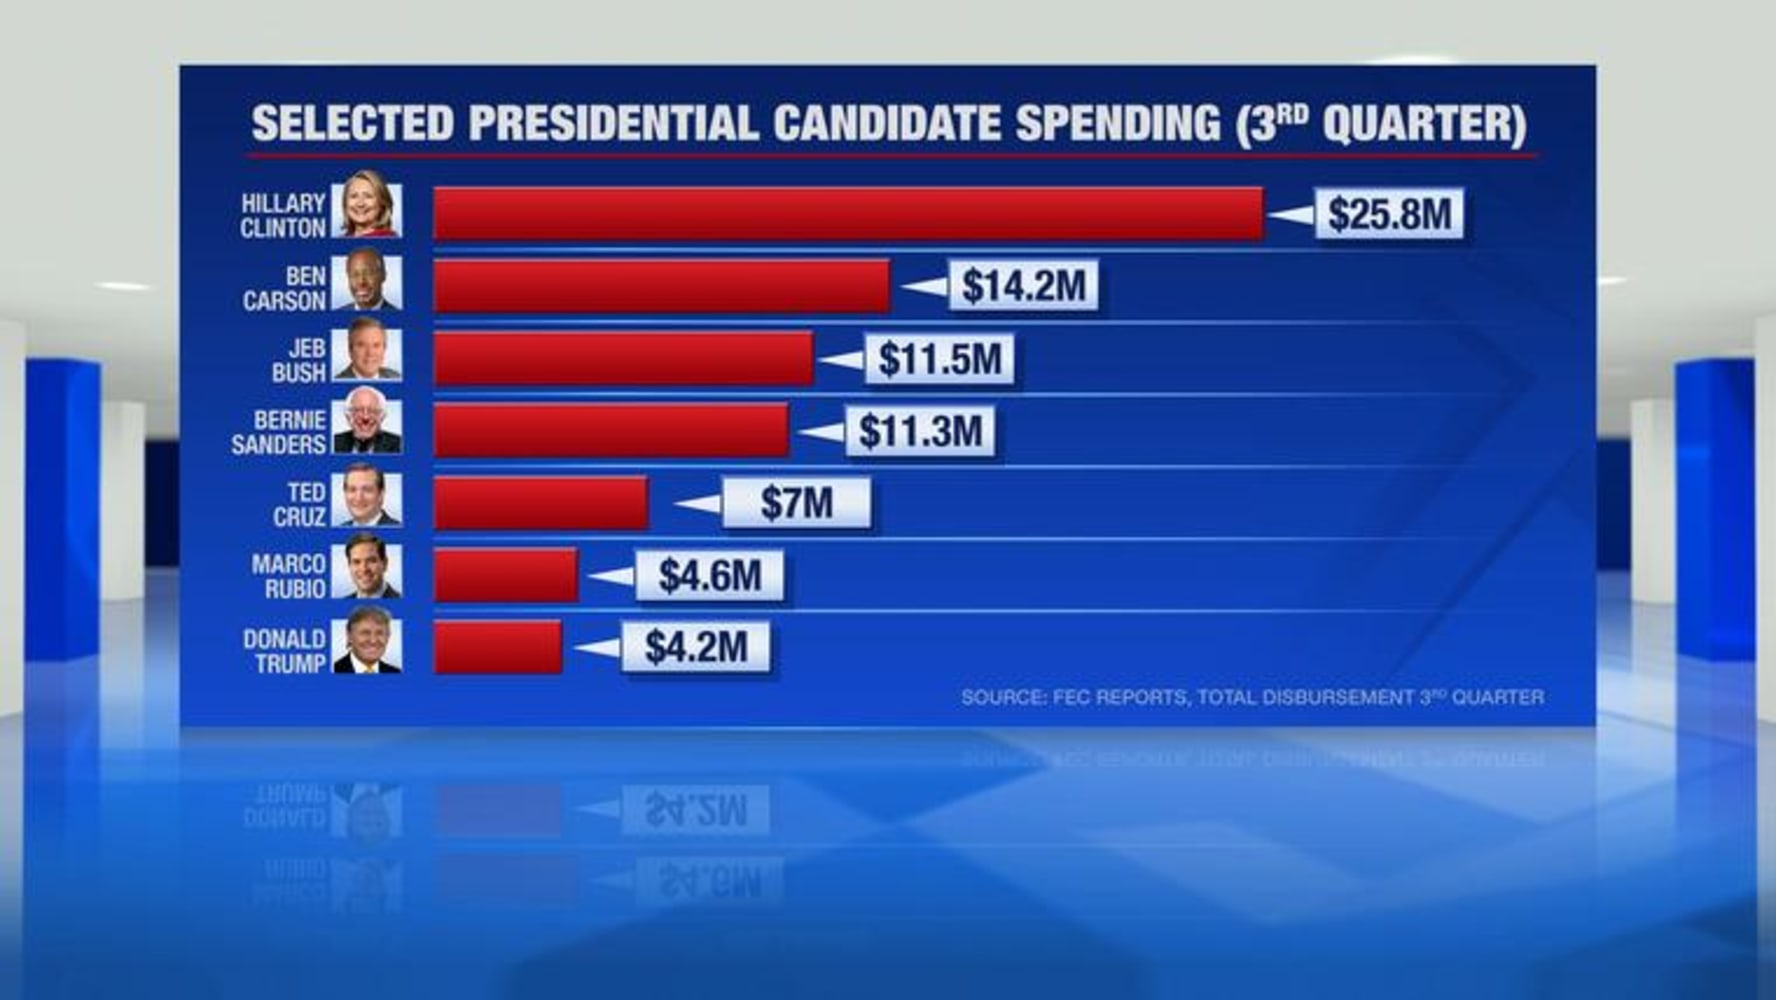 Donald Trump Donors Outspend Billionaire Candidate on Campaign - NBC ...